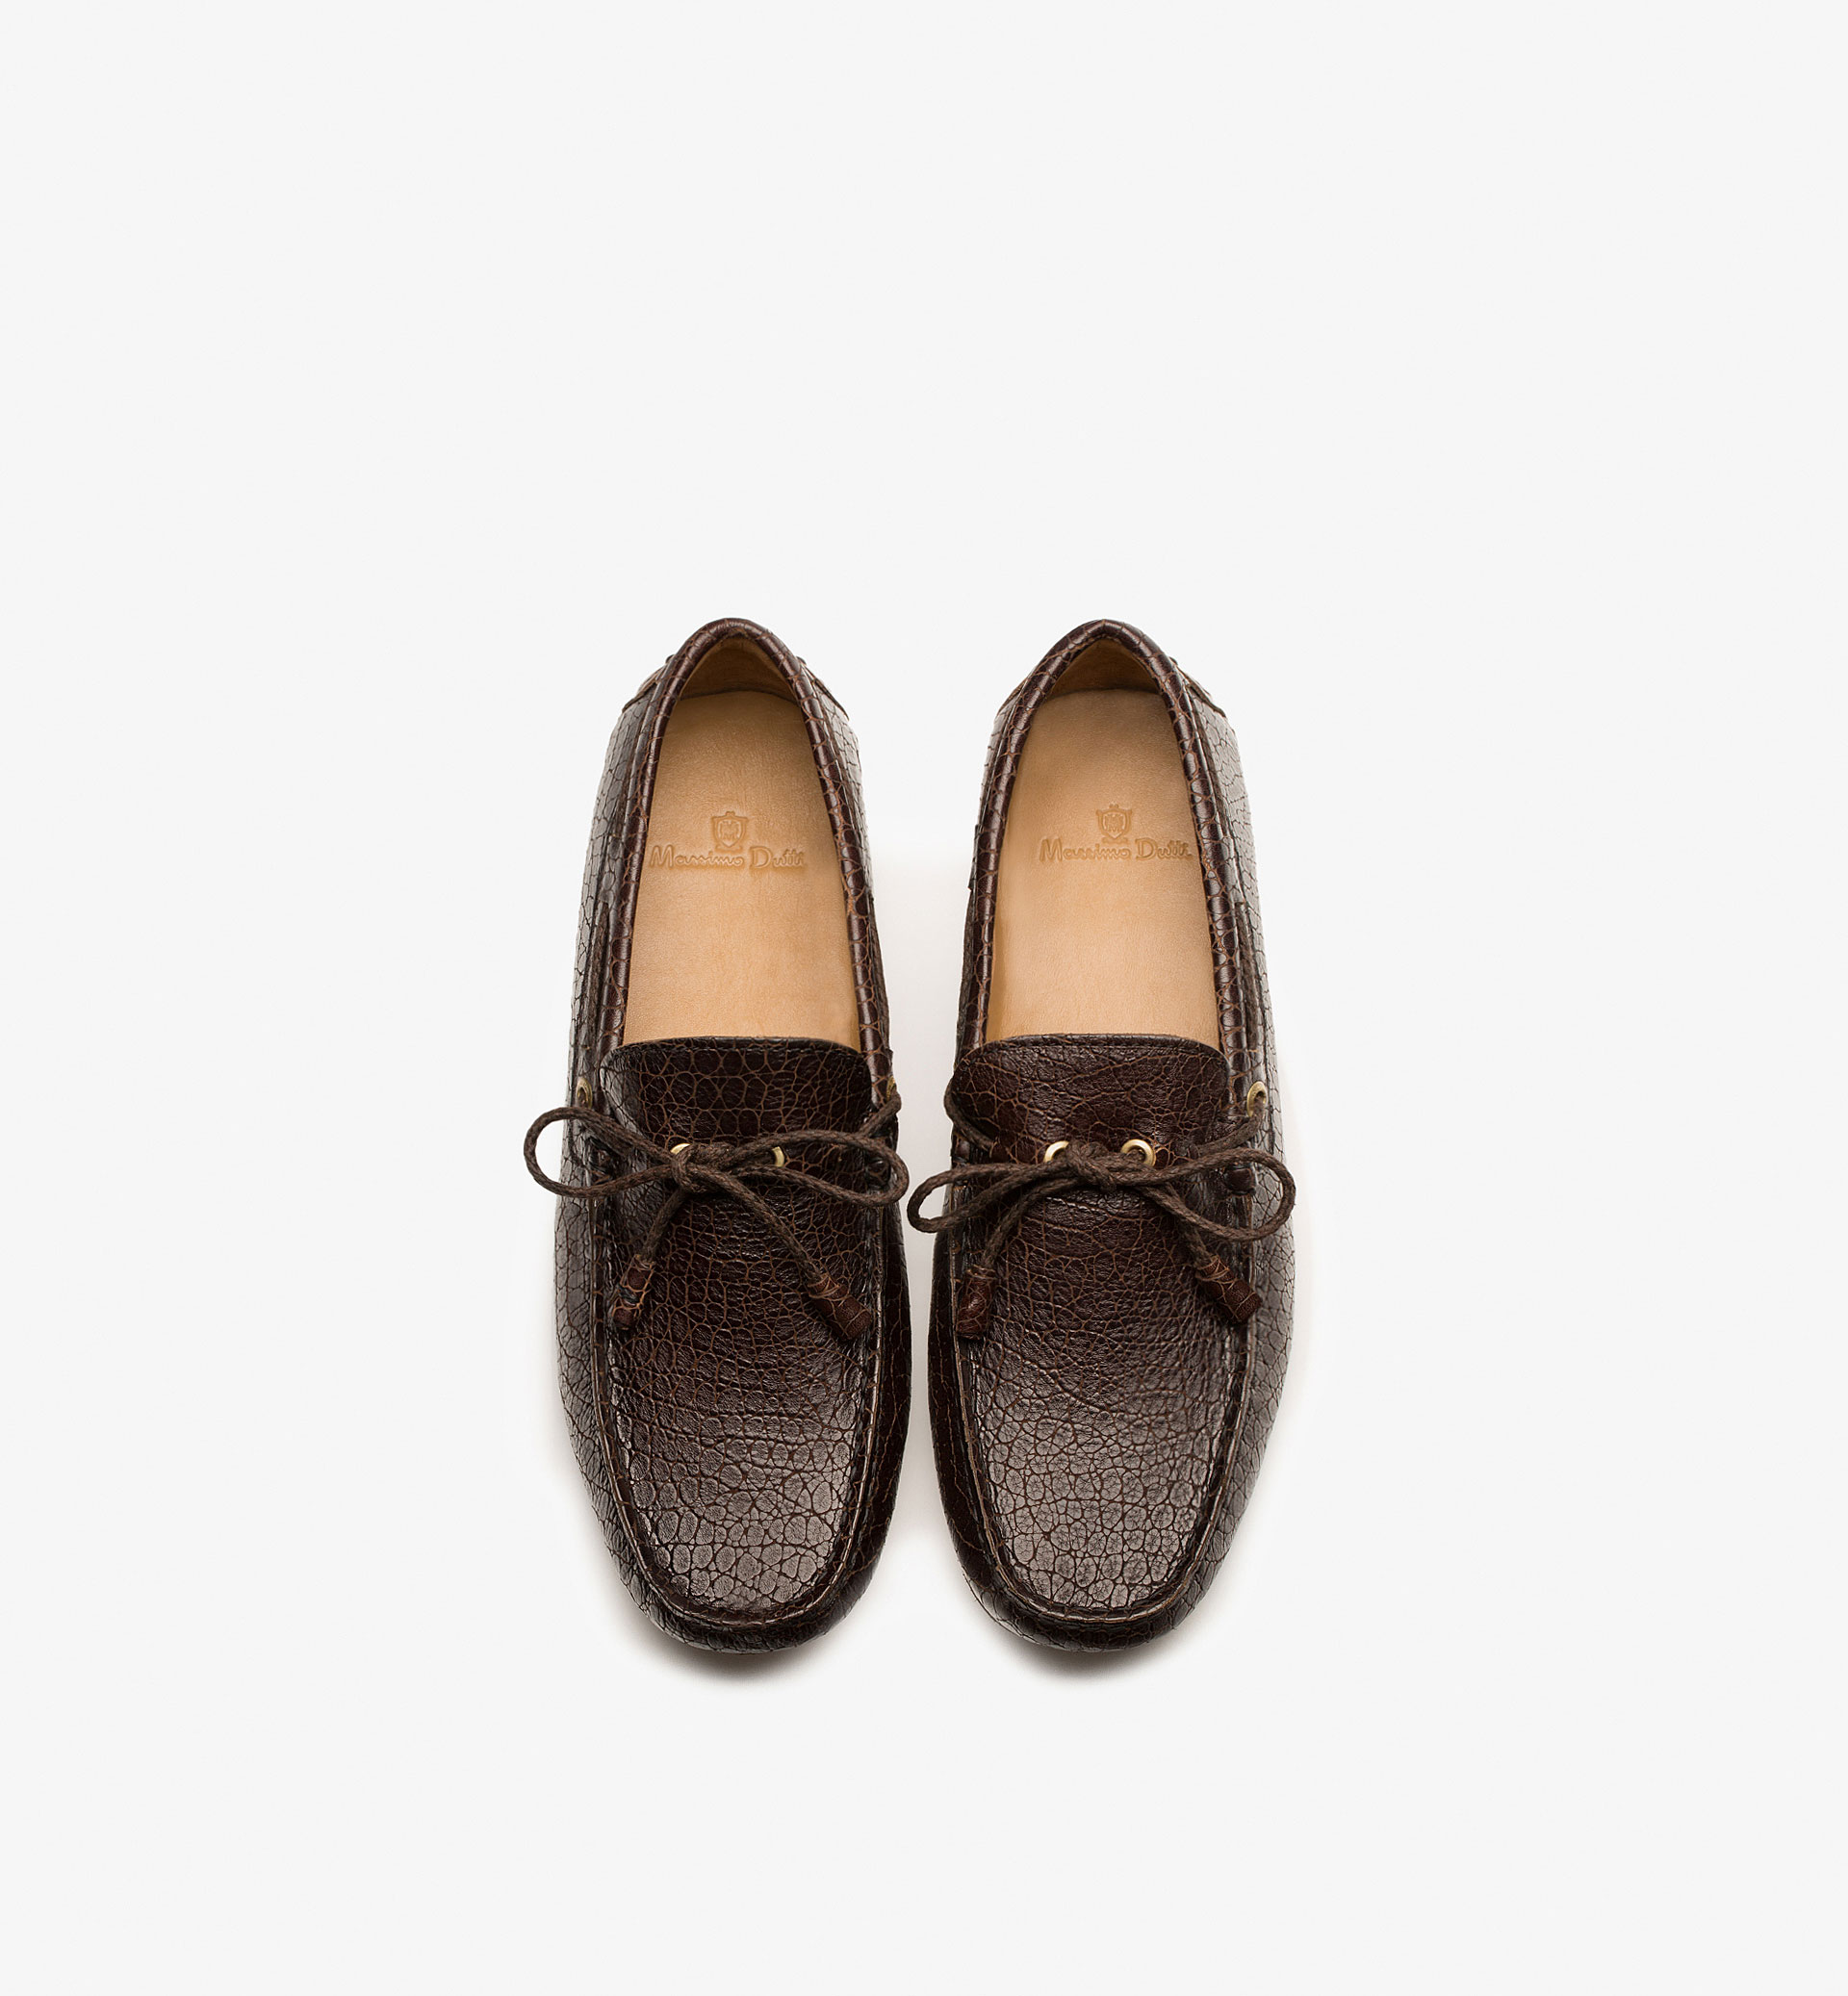 EMBOSSED LEATHER LOAFERS